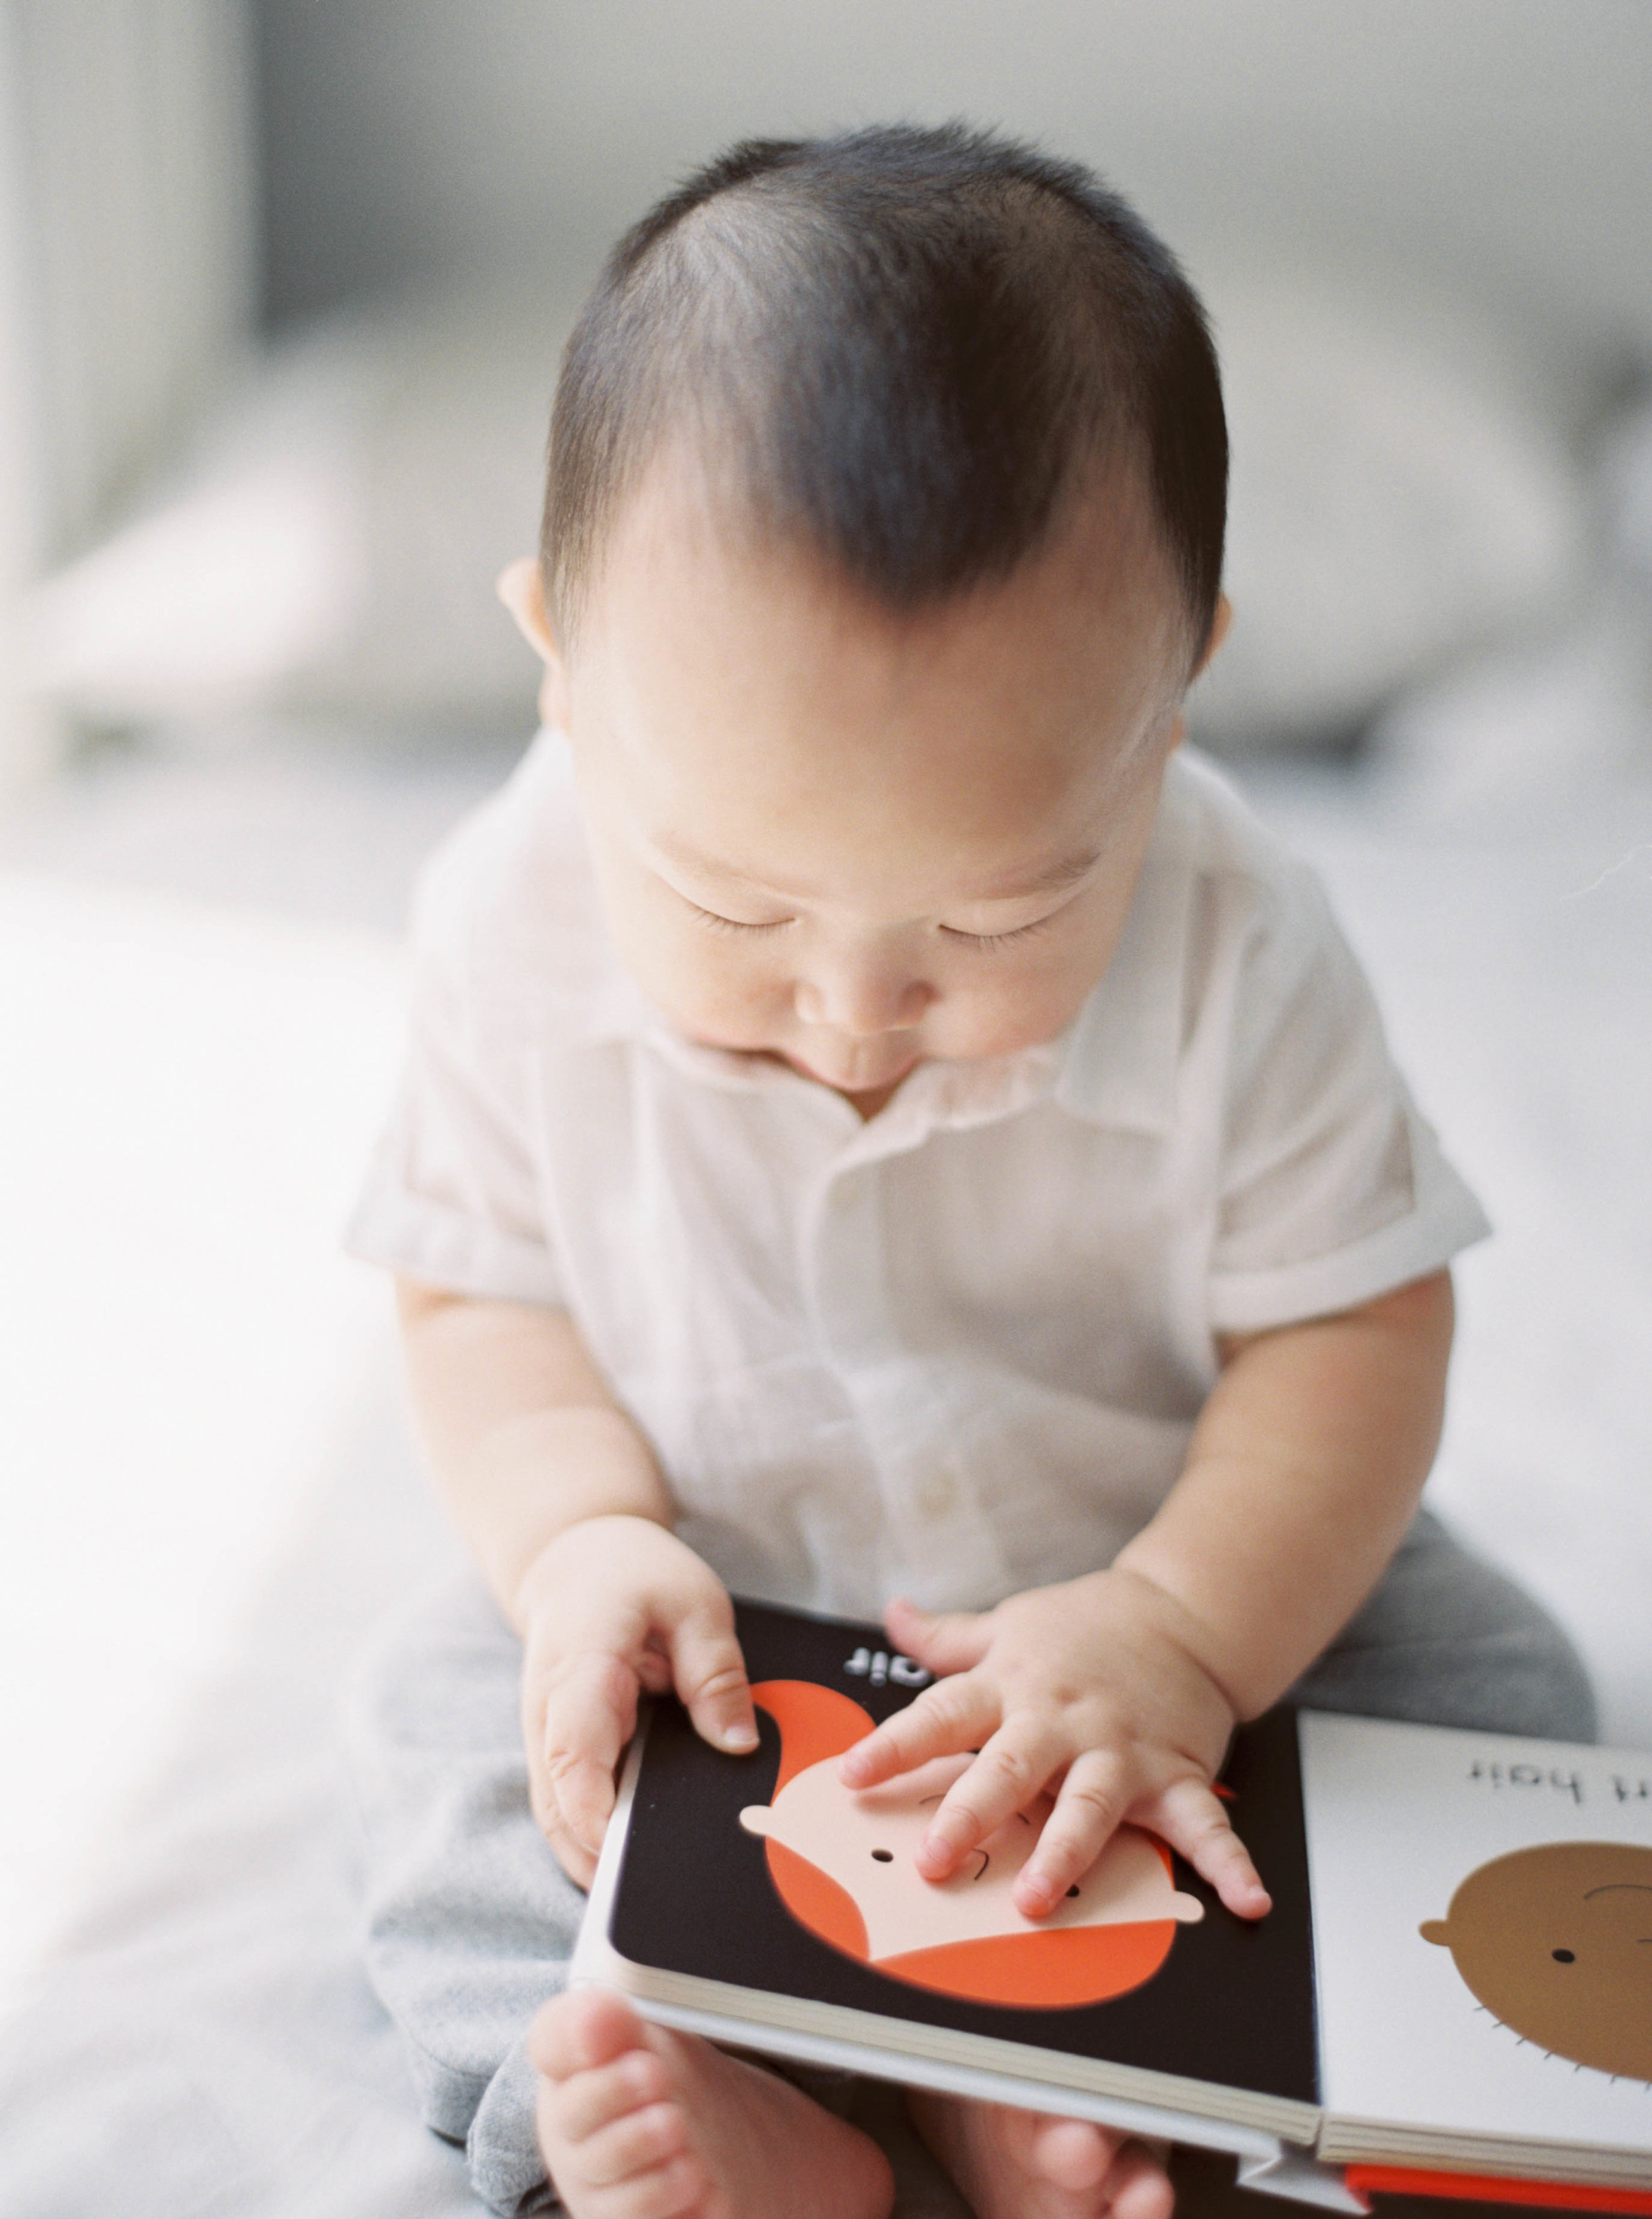 Cody-At Home-Simple-Baby Photography-8 Months Old-Studio June-Film Photography-Jakarta-36.jpg